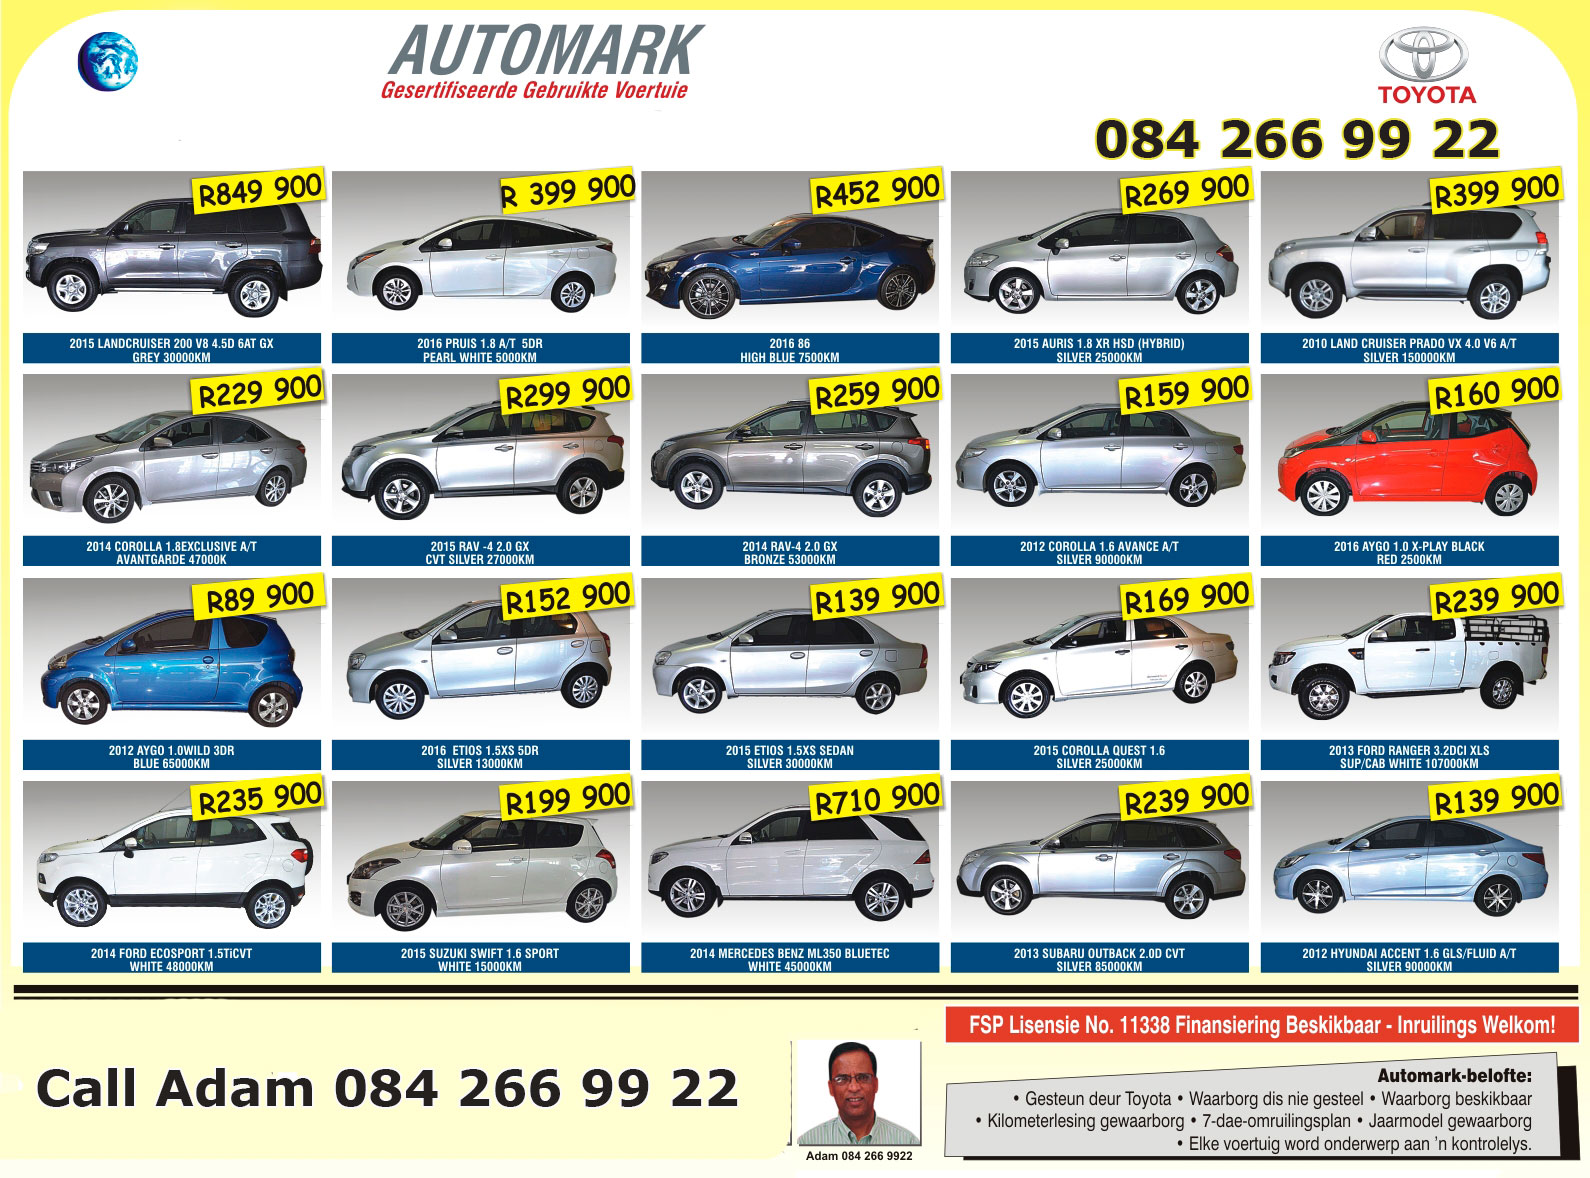 Second Hand Automatic Cars For Sale In Cape Town